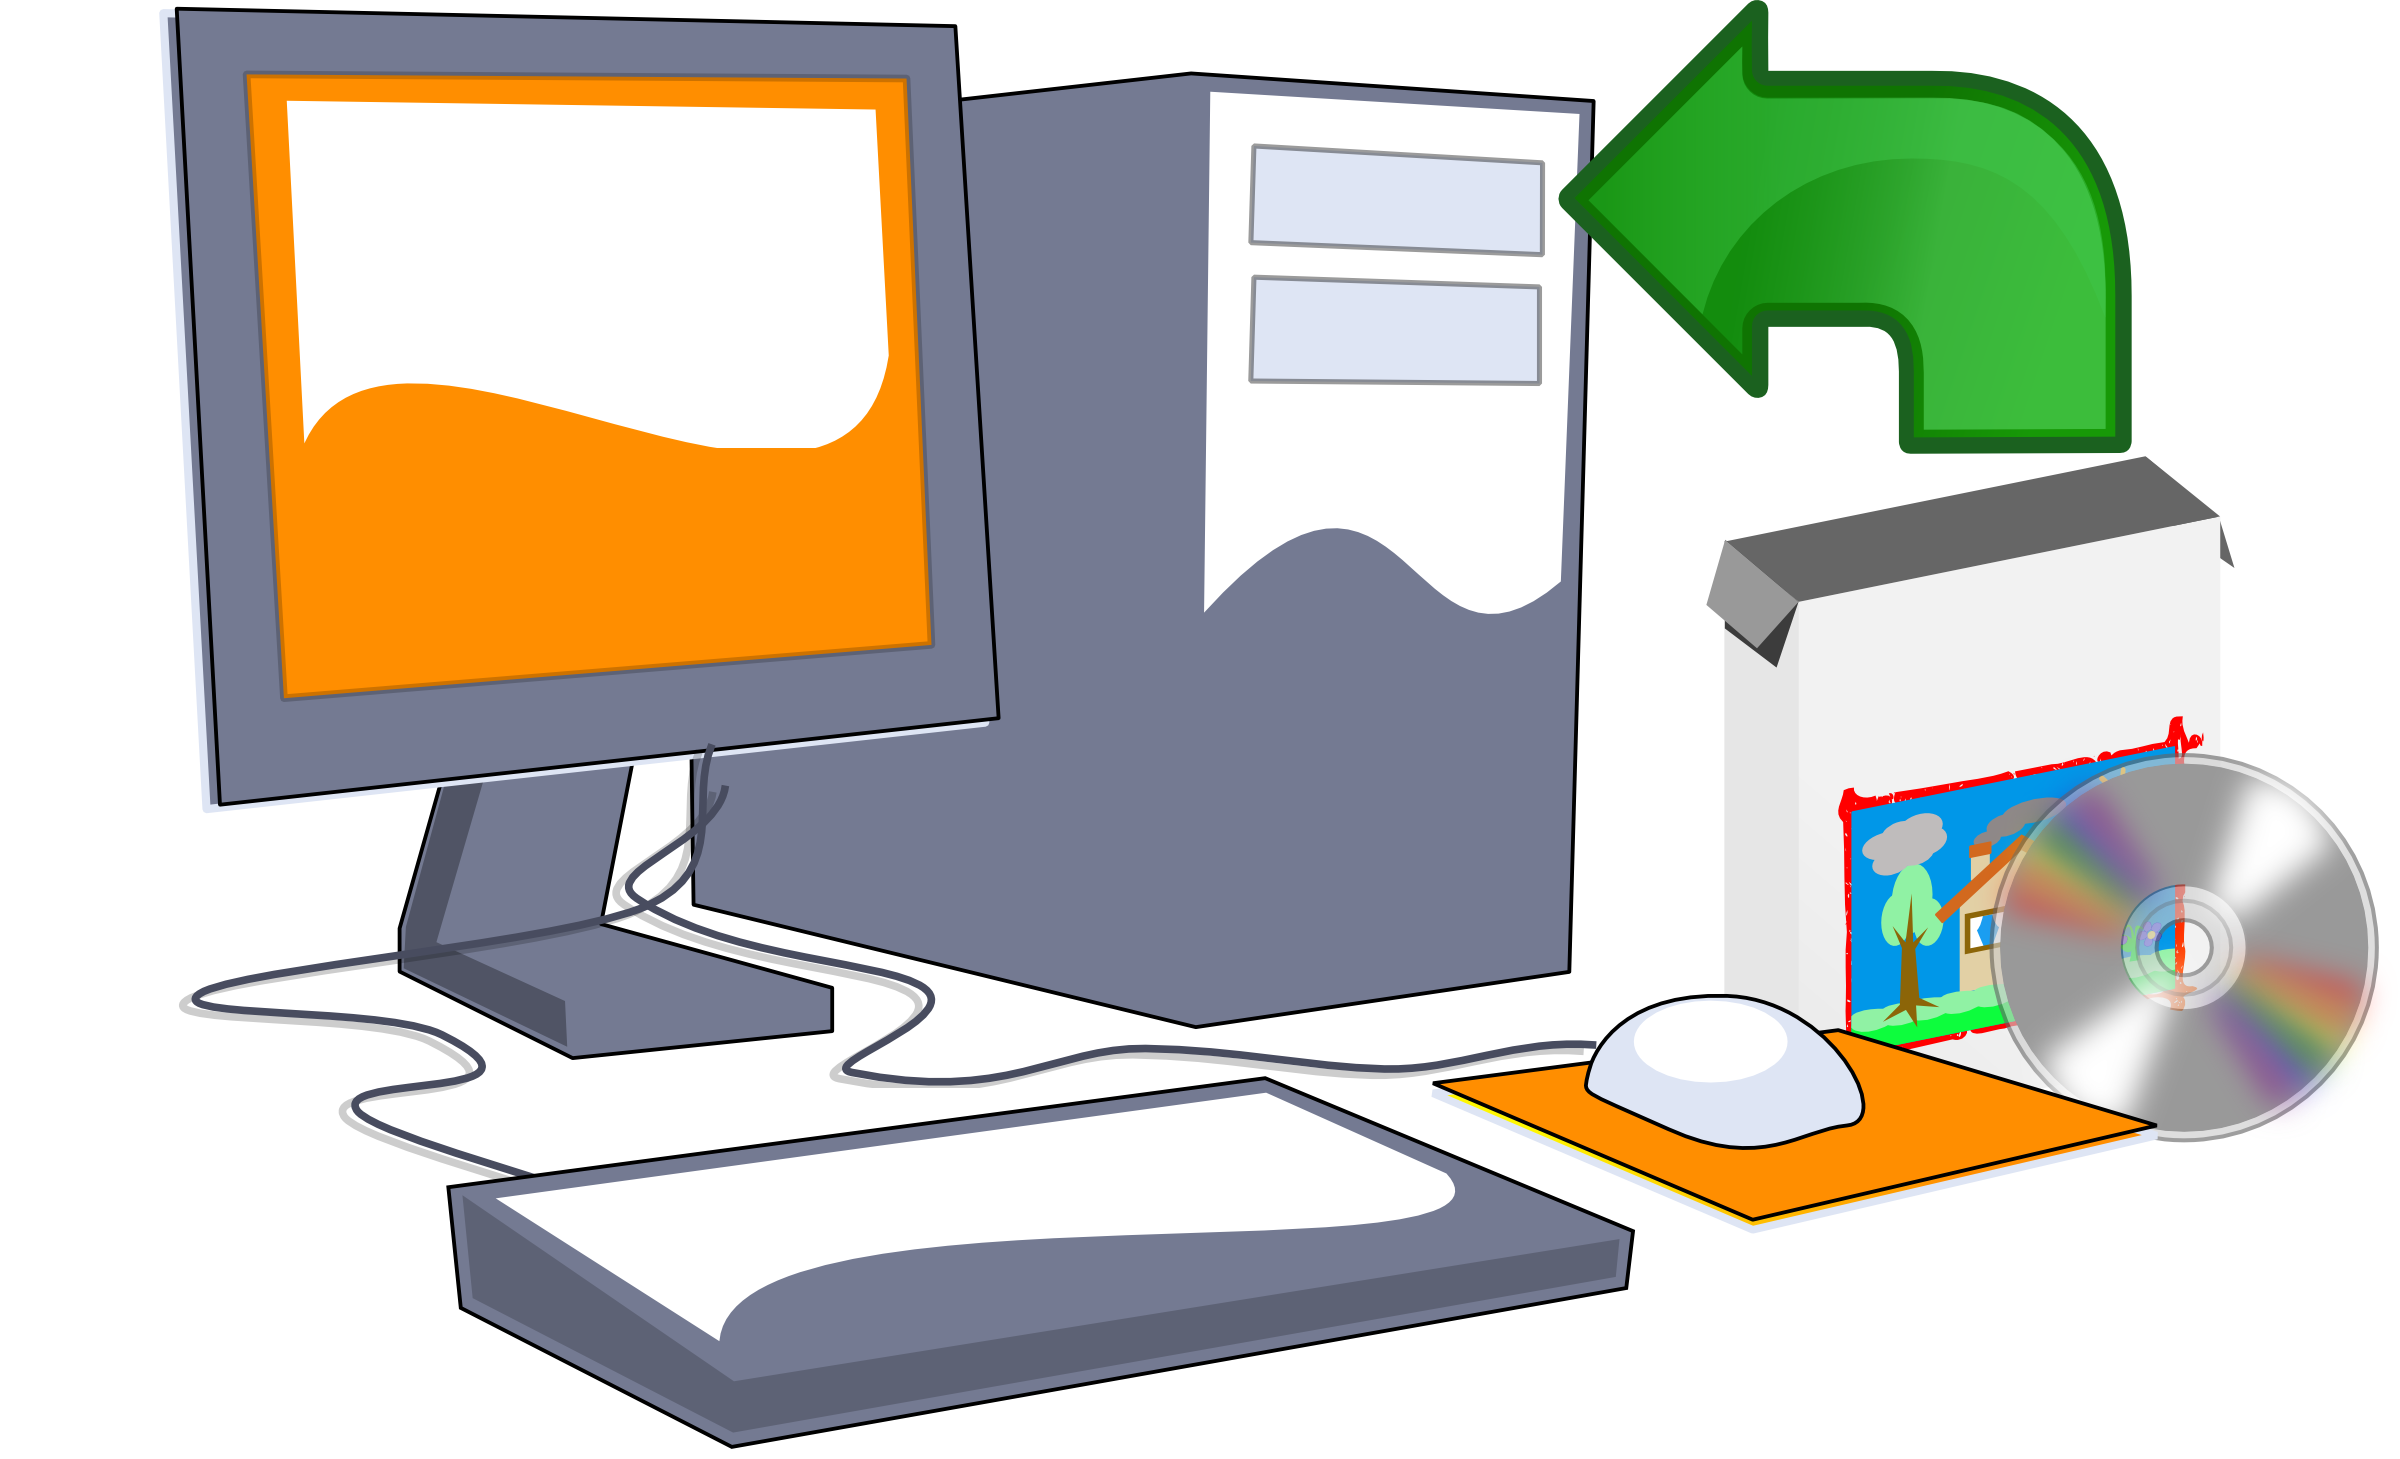 Software Clipart Clipart Panda Free Clipart Images